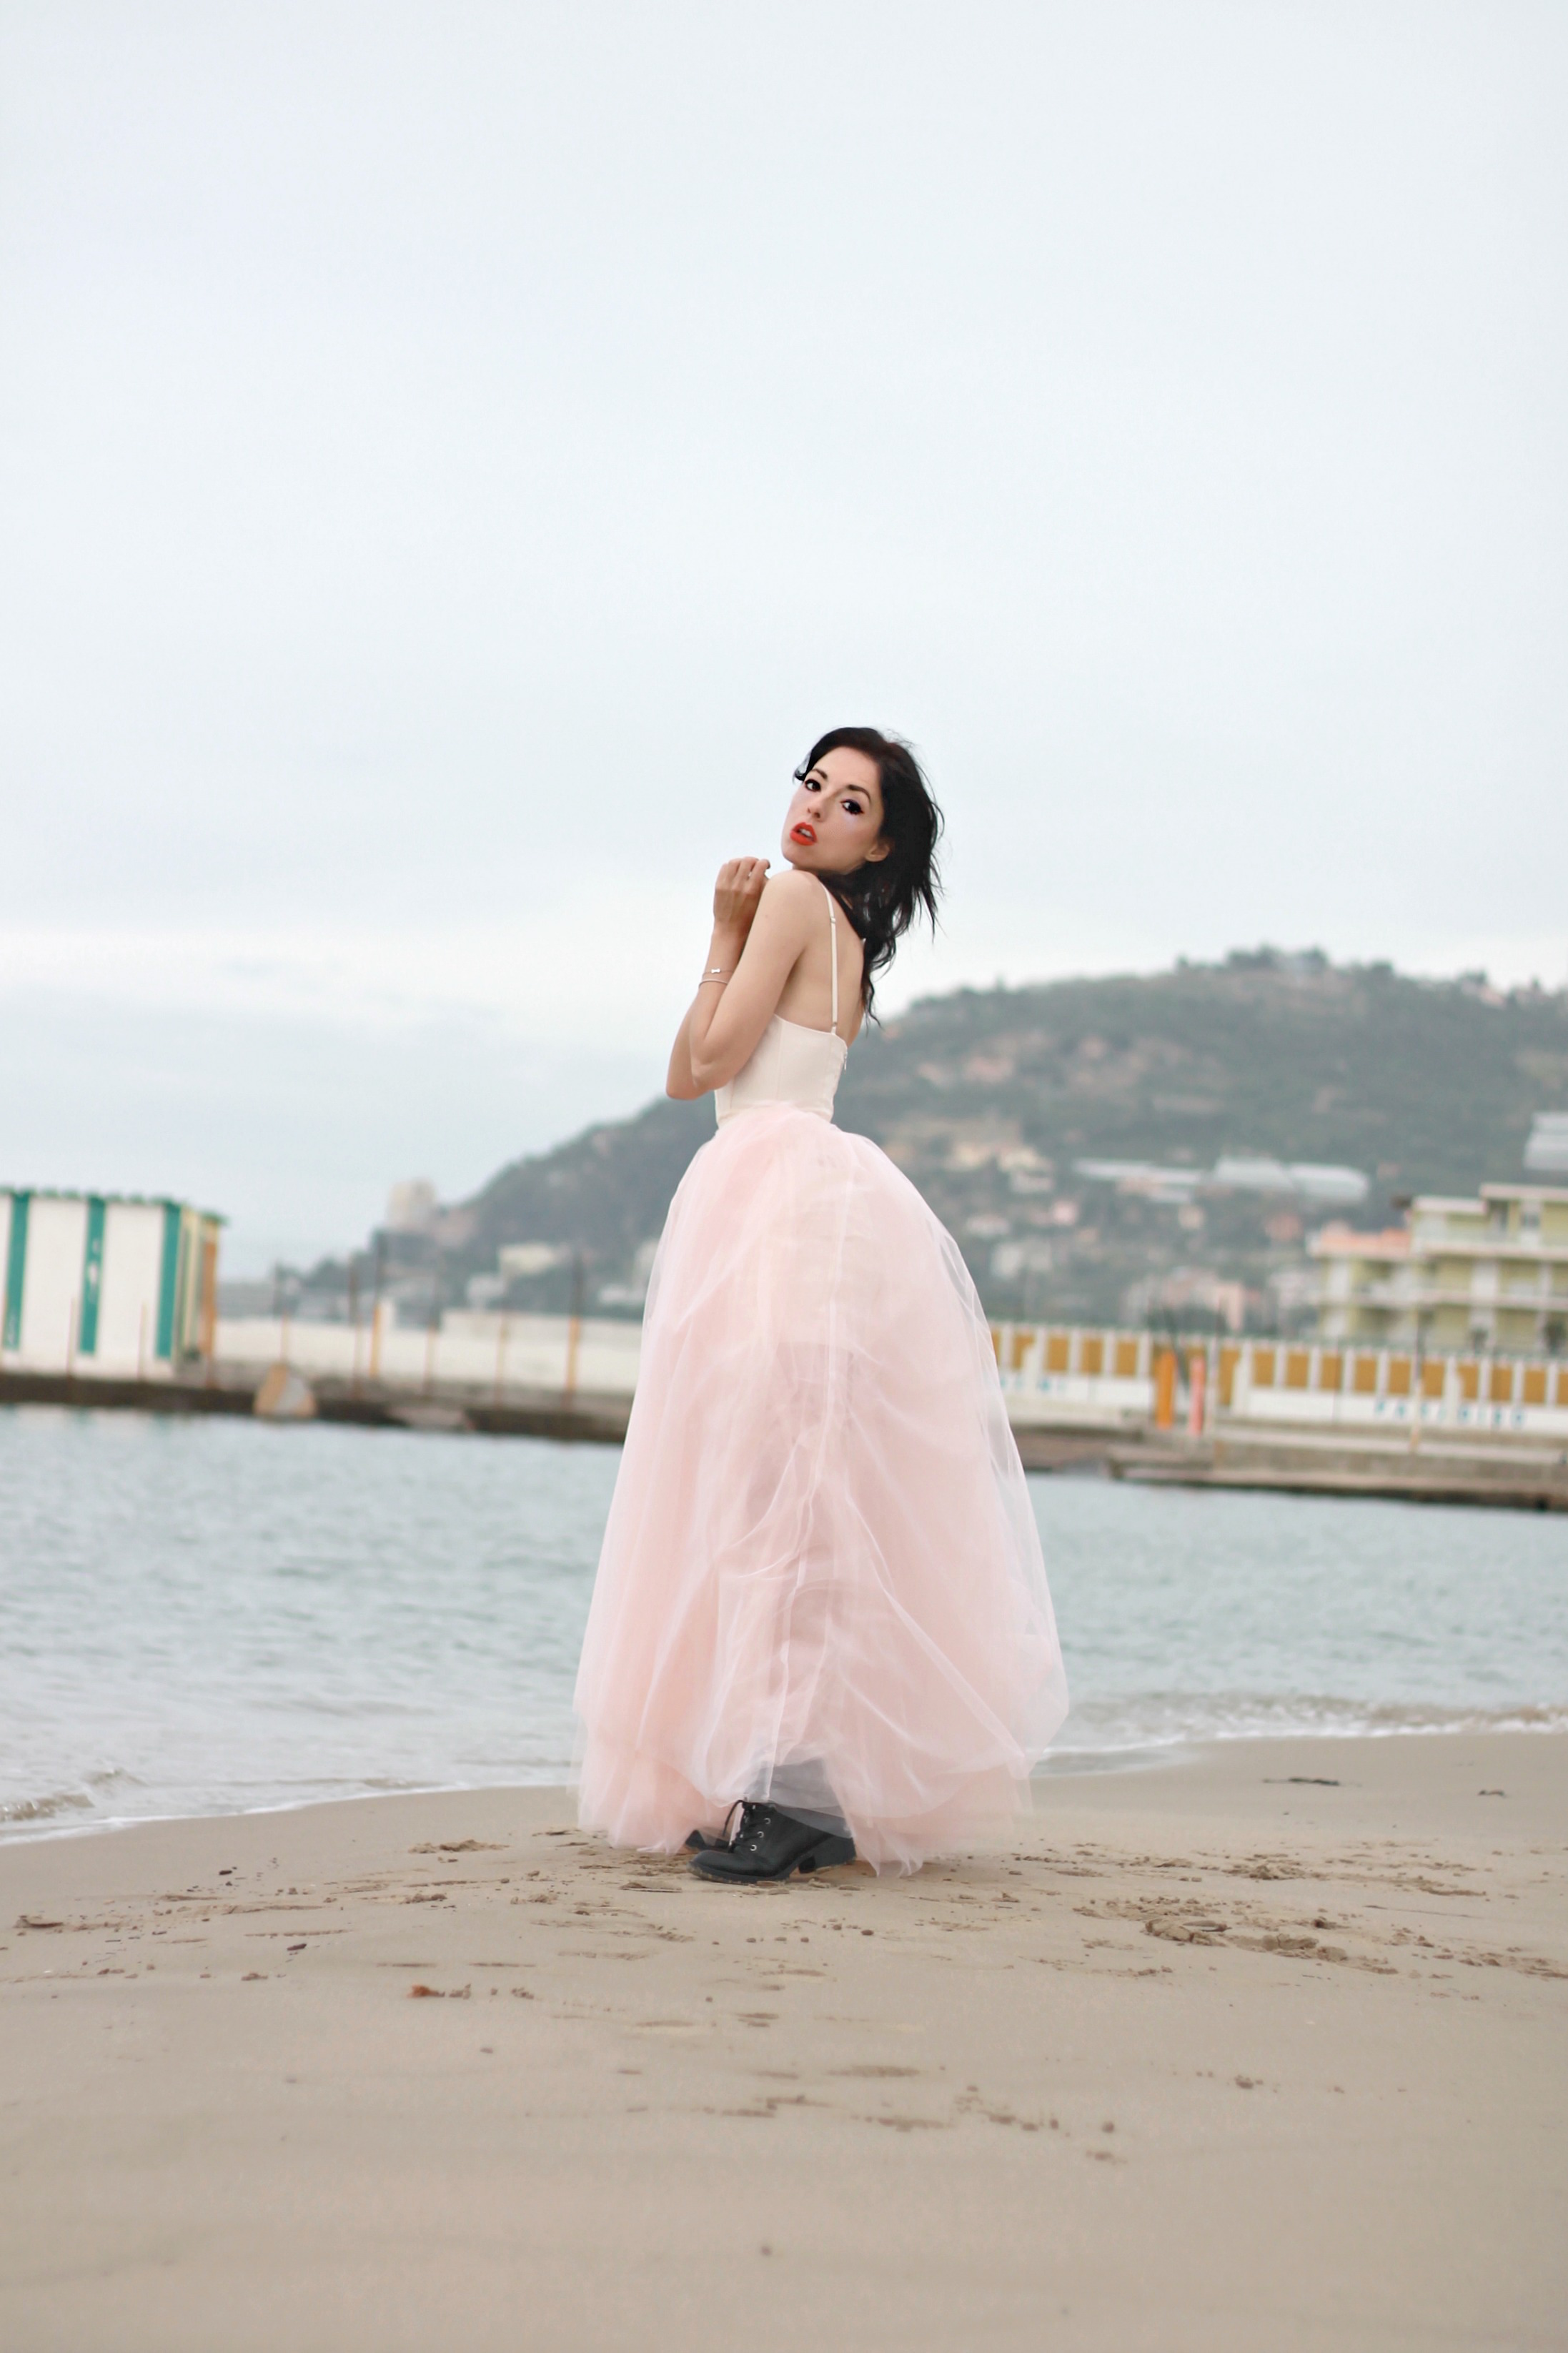 drogati di beauty, theladycracy.it, elisa bellino, fashion blog, fashion blogger 2016, fashion influencer, fashion blogger famose, fashion bloggers 2016, outfit blogger estate 2016, tendenze moda 2016, tulle pink dress, tulle abito rosa, fashion blogger italiane 2016, outfit blogger moda 2016, #lookls condé nast, fashion rental service trend 2016, fashion editorial, nastyl gal pink tulle dress, dreamy fashion editorial, fashion inspiring photography